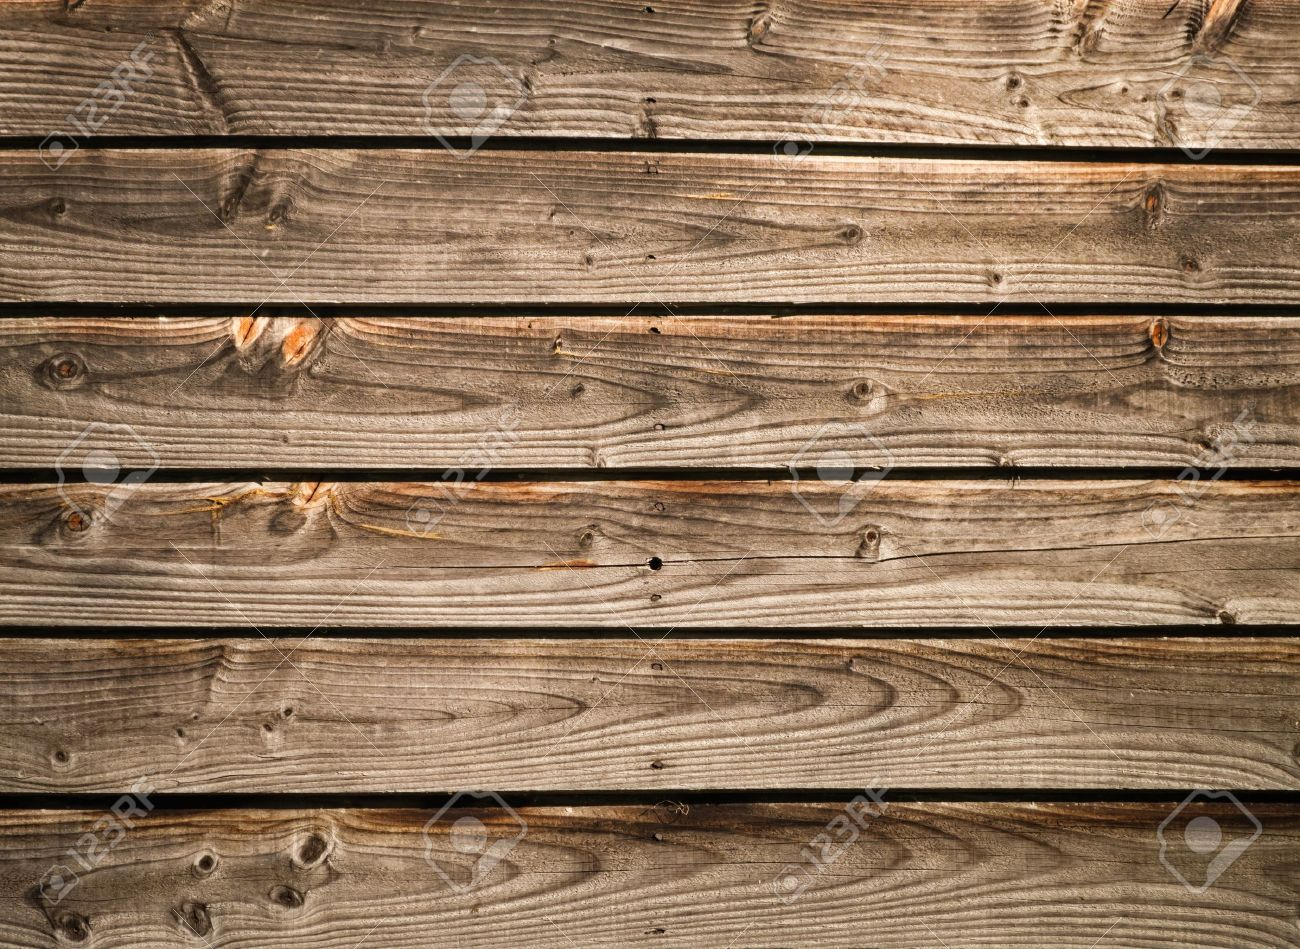 Barn Wood Texture aged wood texture from barn stock photo, picture and royalty free